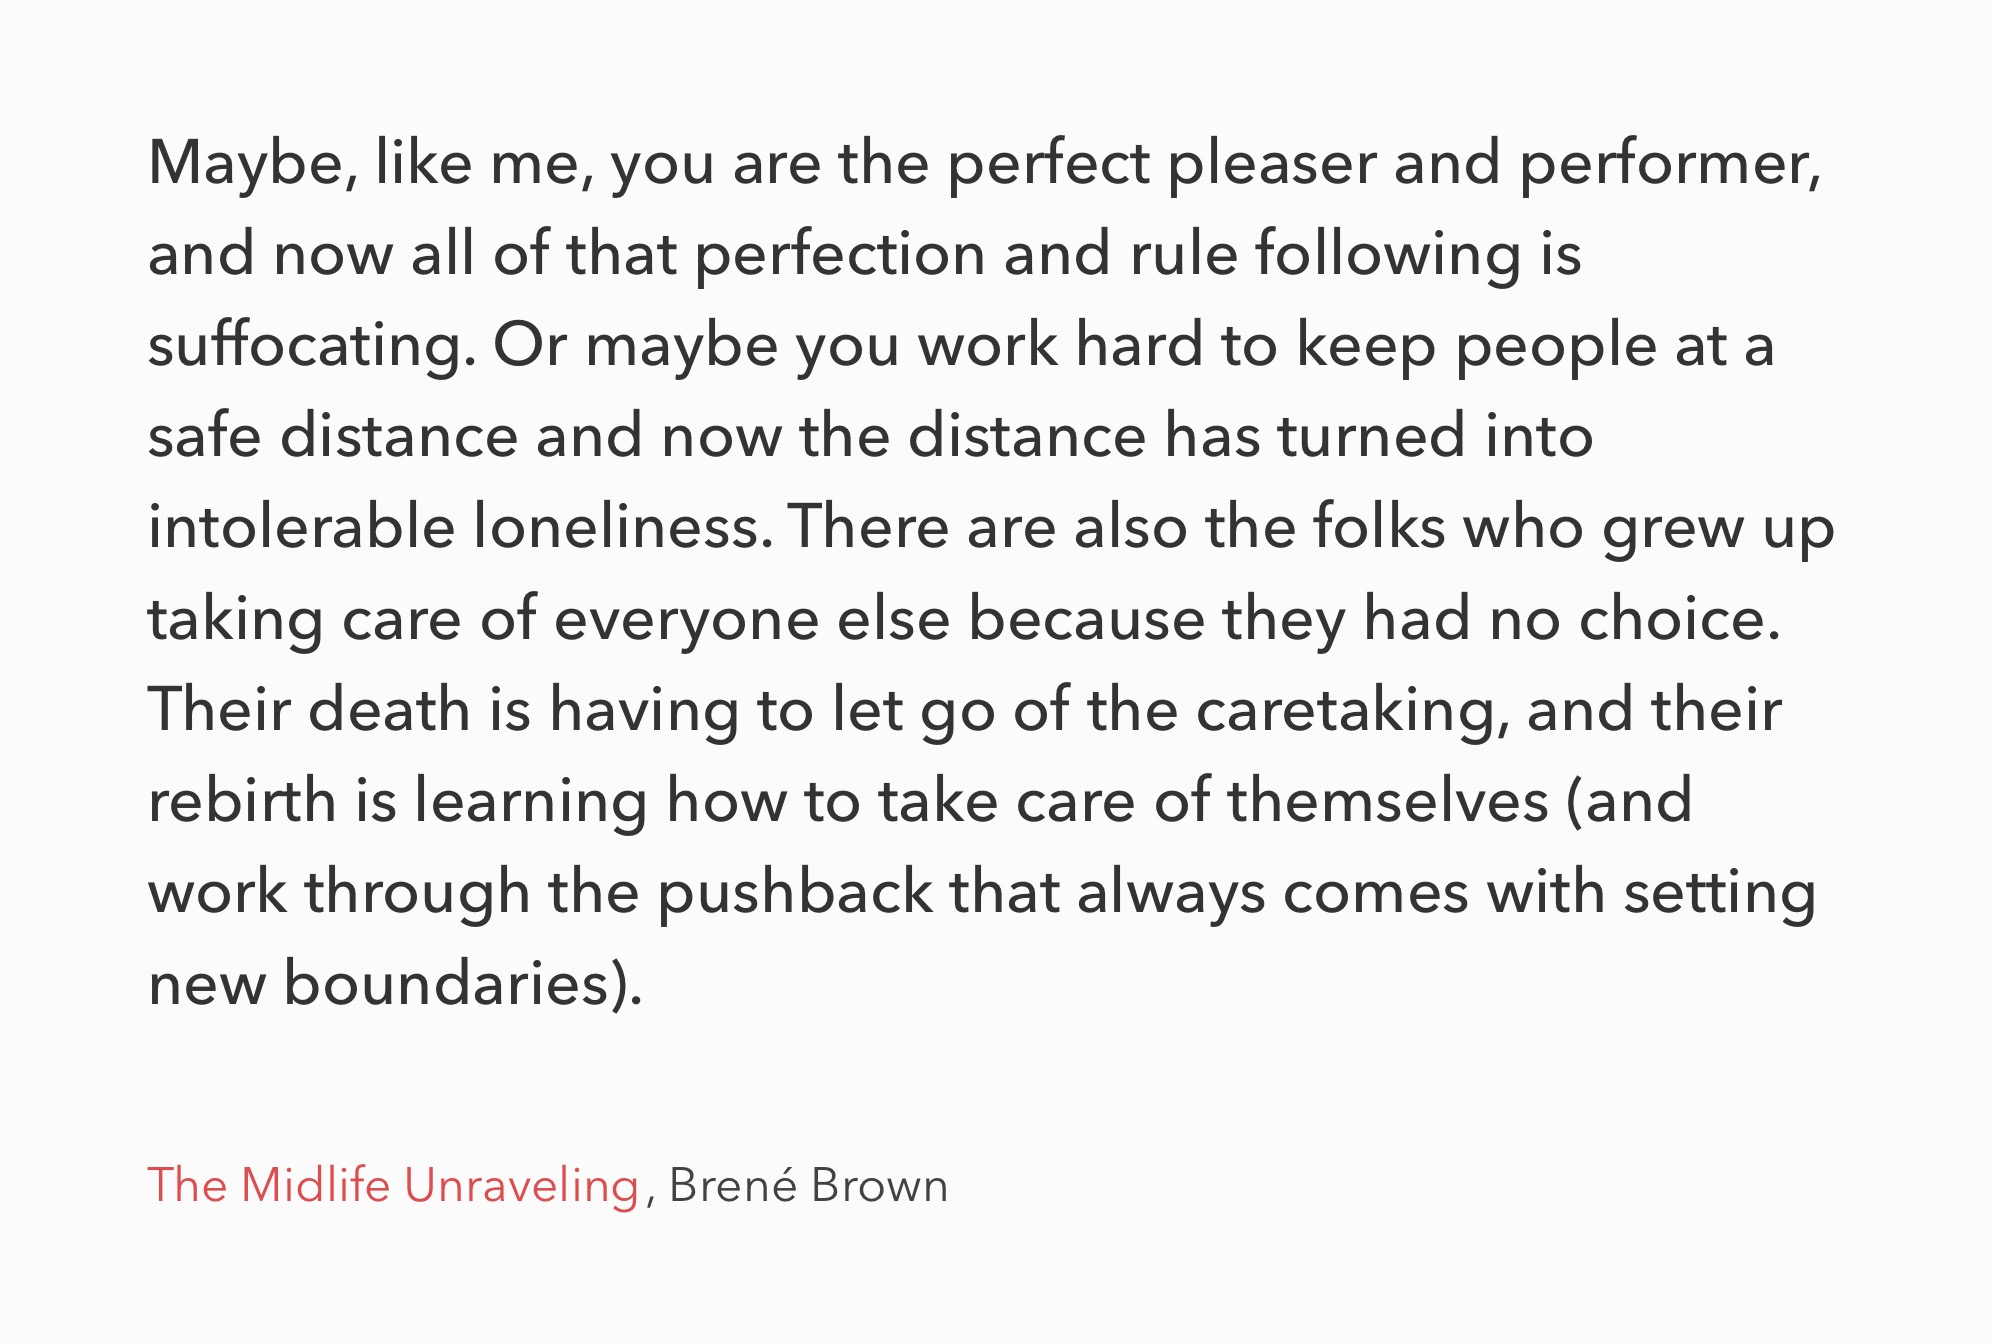 Quote by Brené Brown in the midlife unraveling